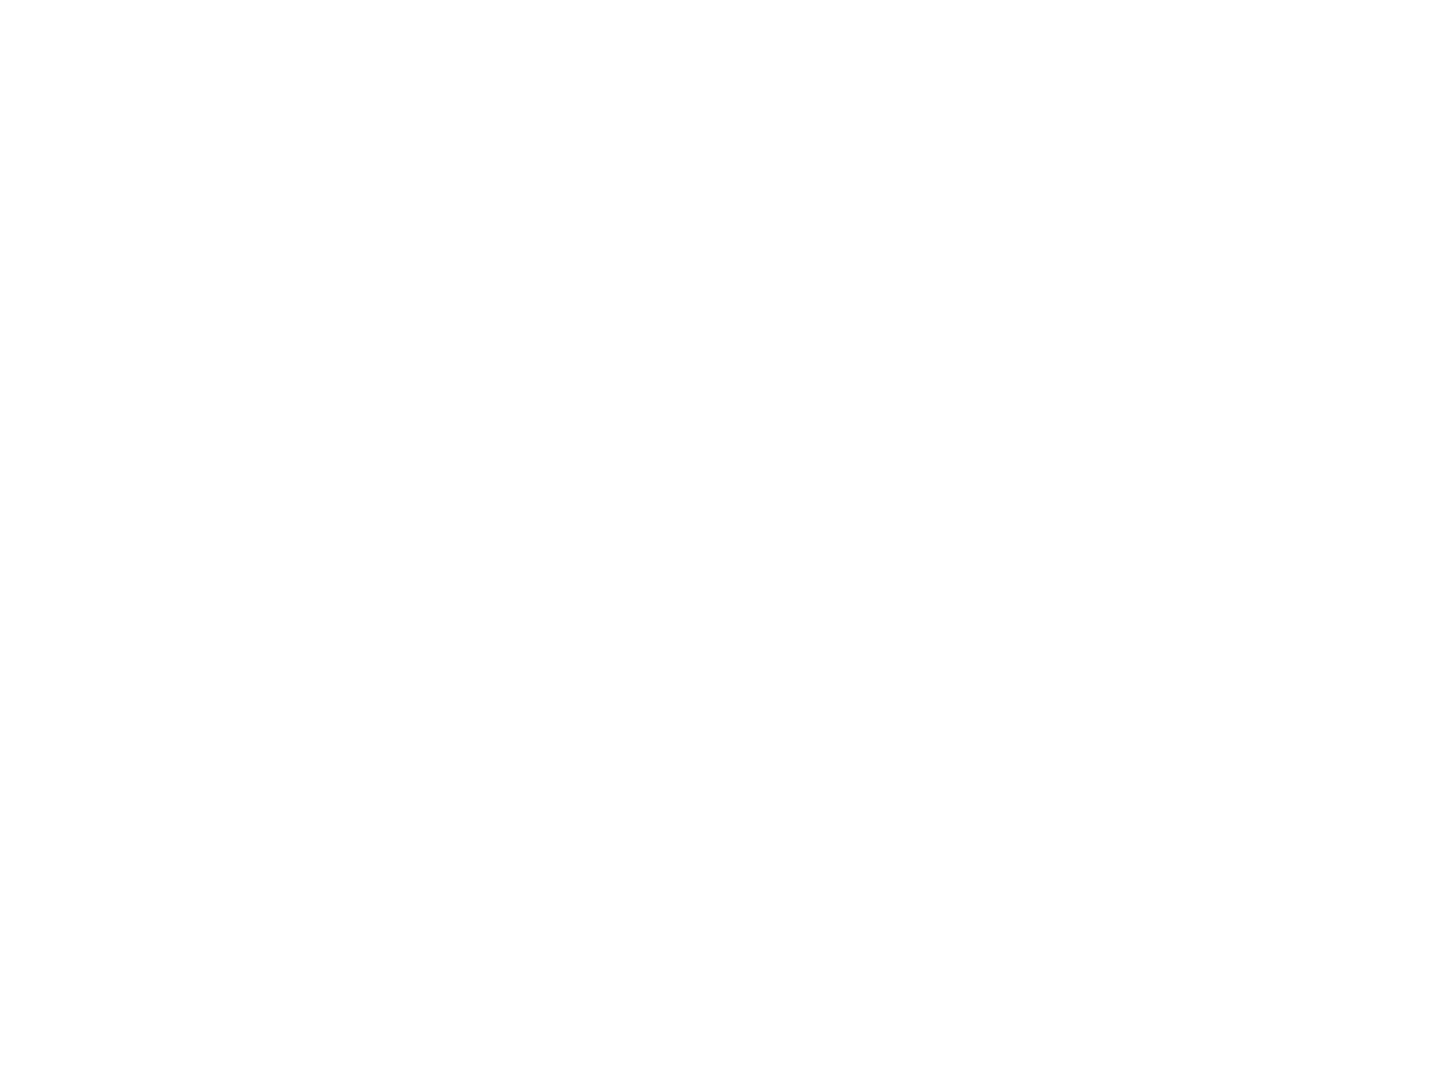 Outreach Center for Women and Children